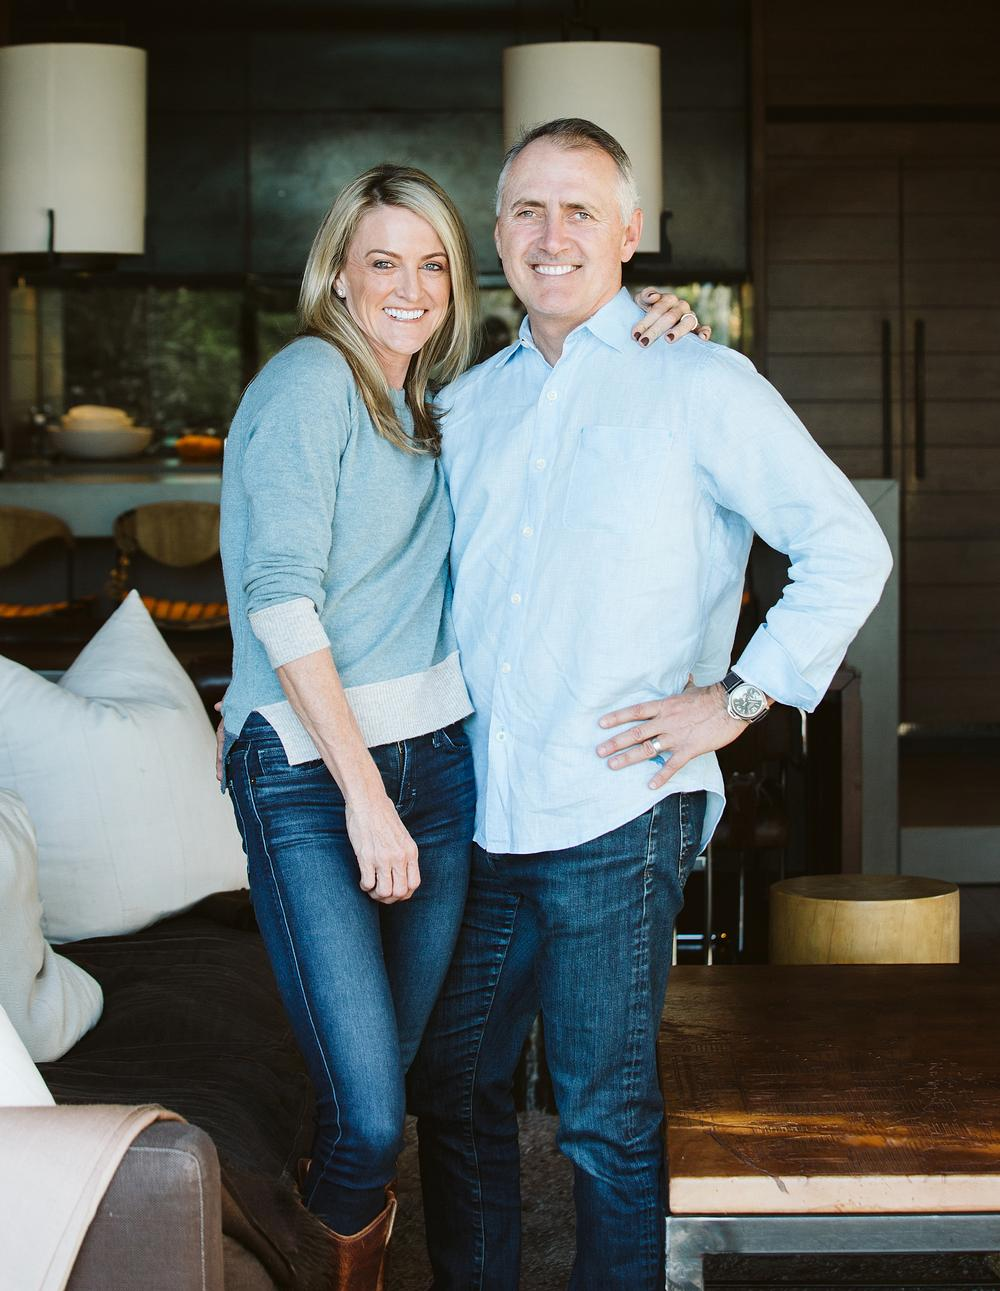 Scott Lee became president of SB Architects in 2000. Tracy Lee founded TLee Spas in 2015